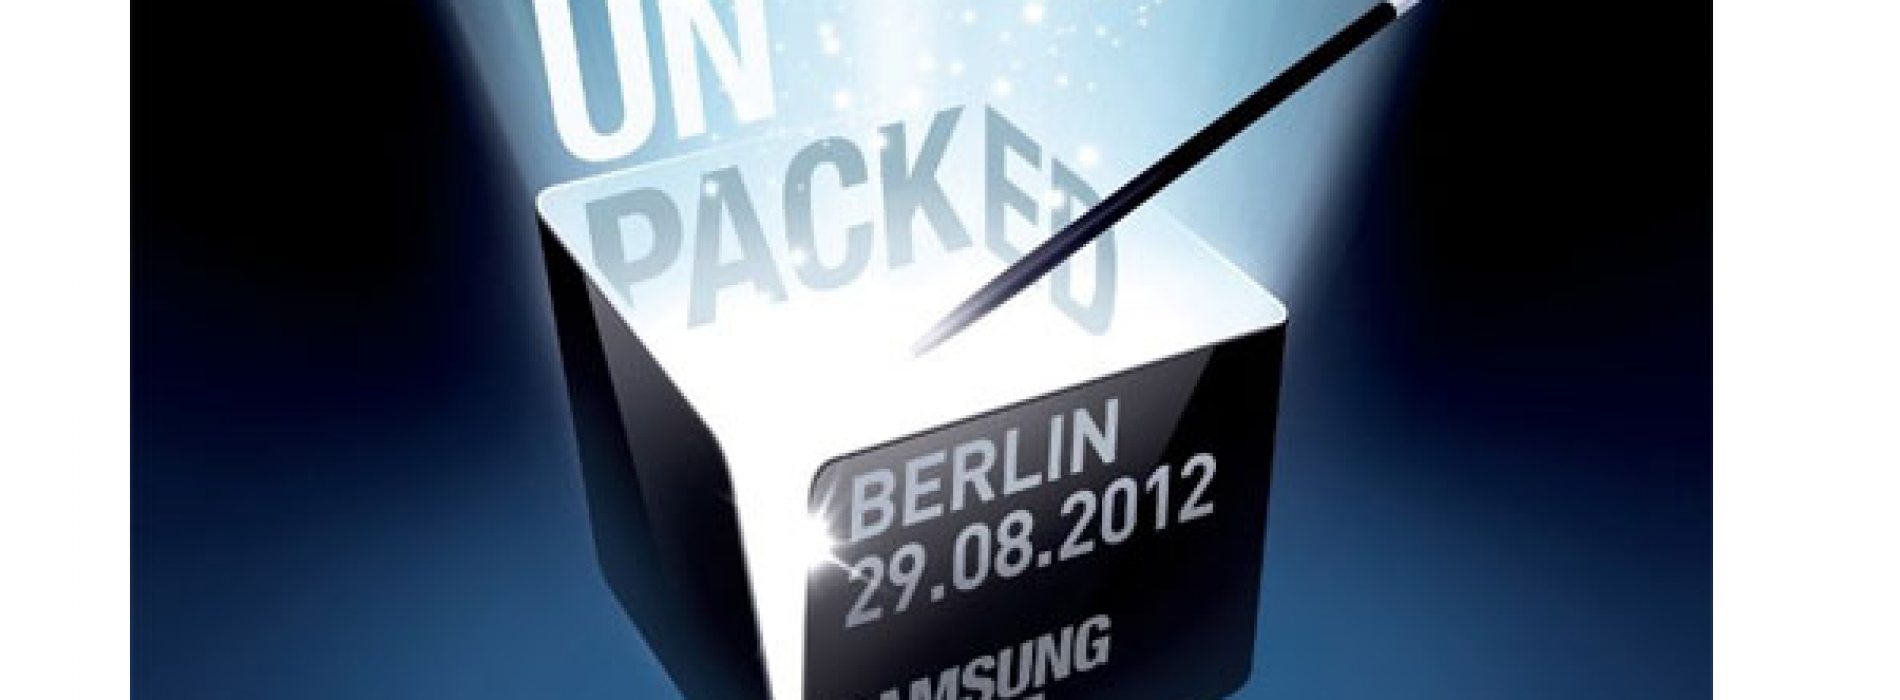 Samsung holding Unpacked event at IFA (Aug 29)